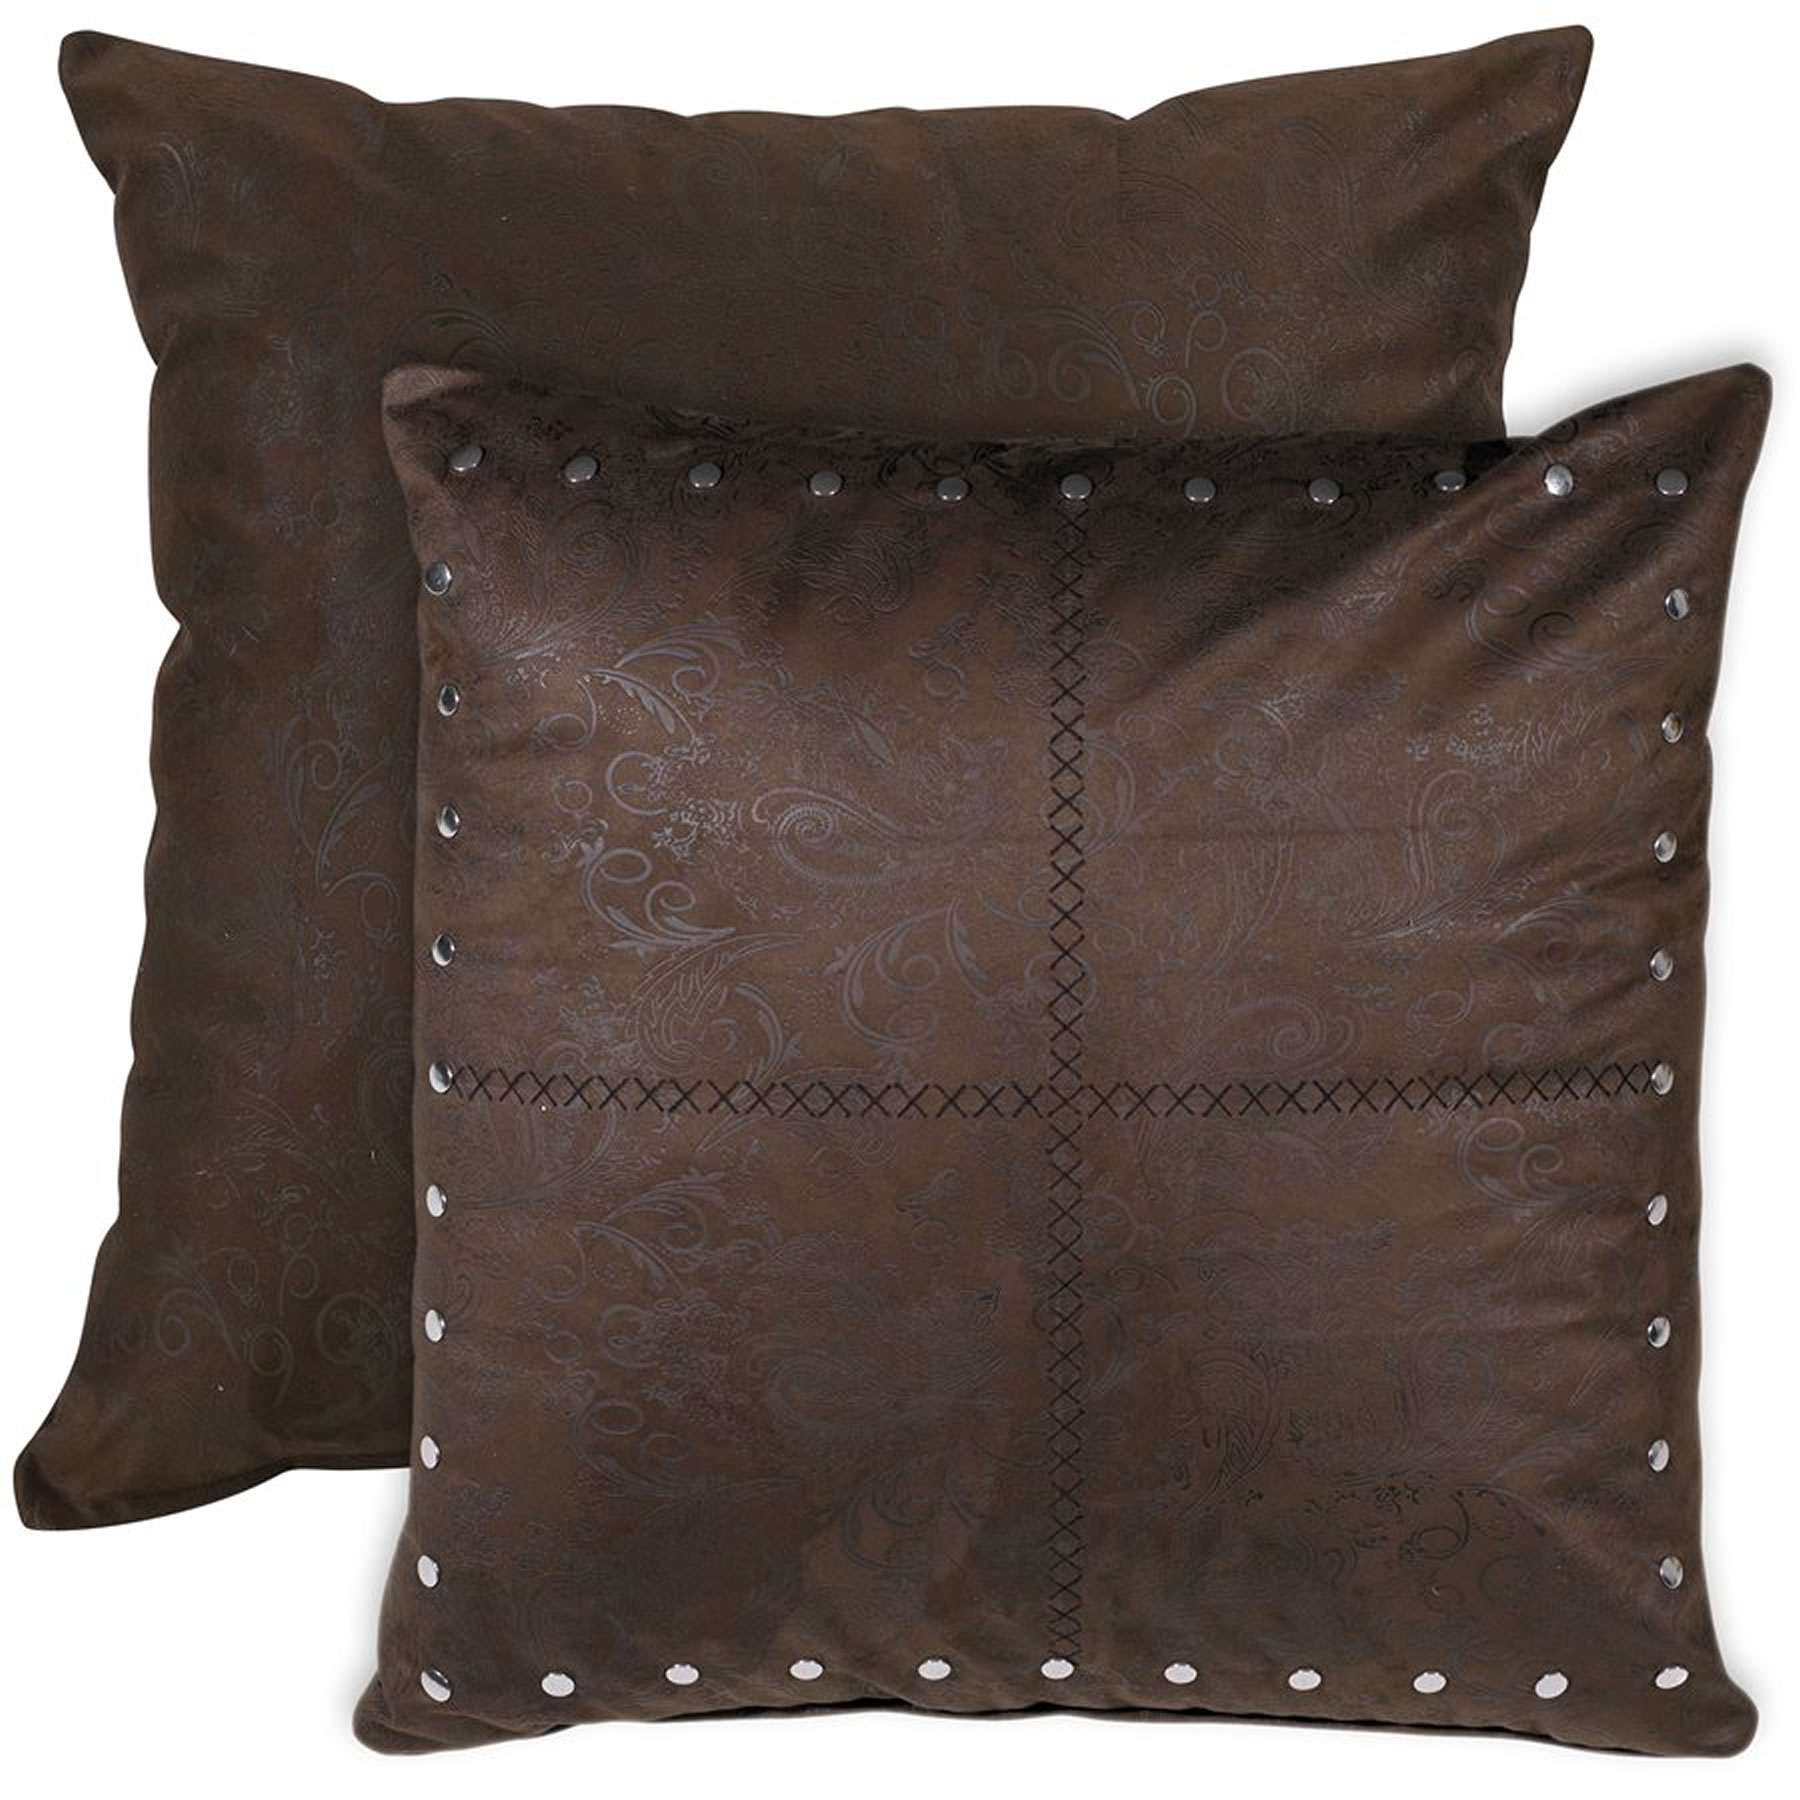 Pungo Ridge - Tucson Faux Leather Tooled Pillow, Decorative Pillows & Shams, WS4078ES